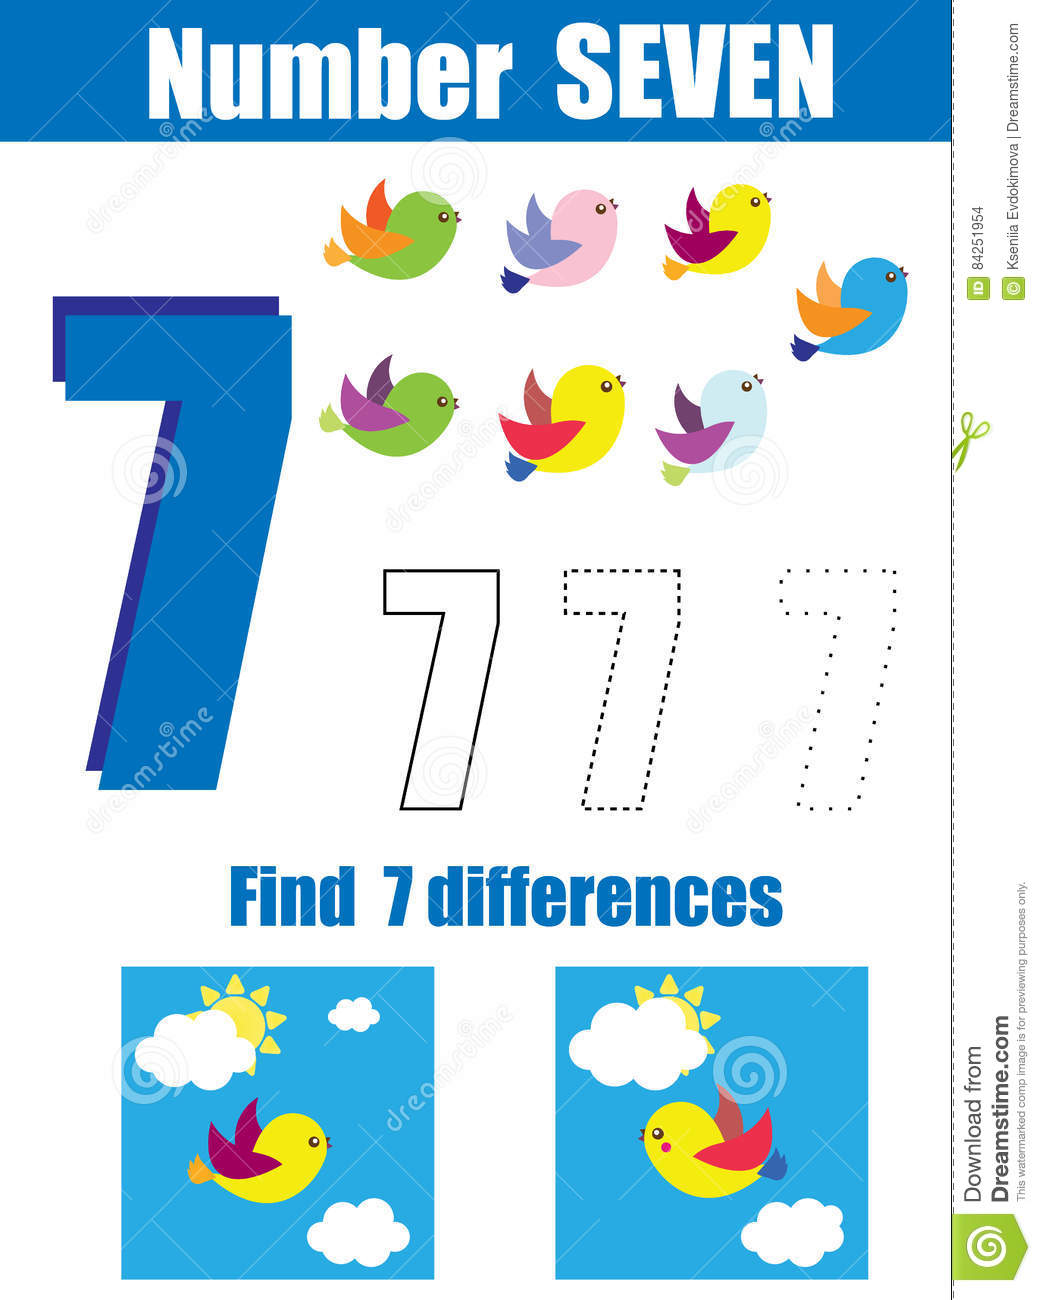 Handwriting Practice Learning Mathematics And Numbers Number Seven Educational Children Game